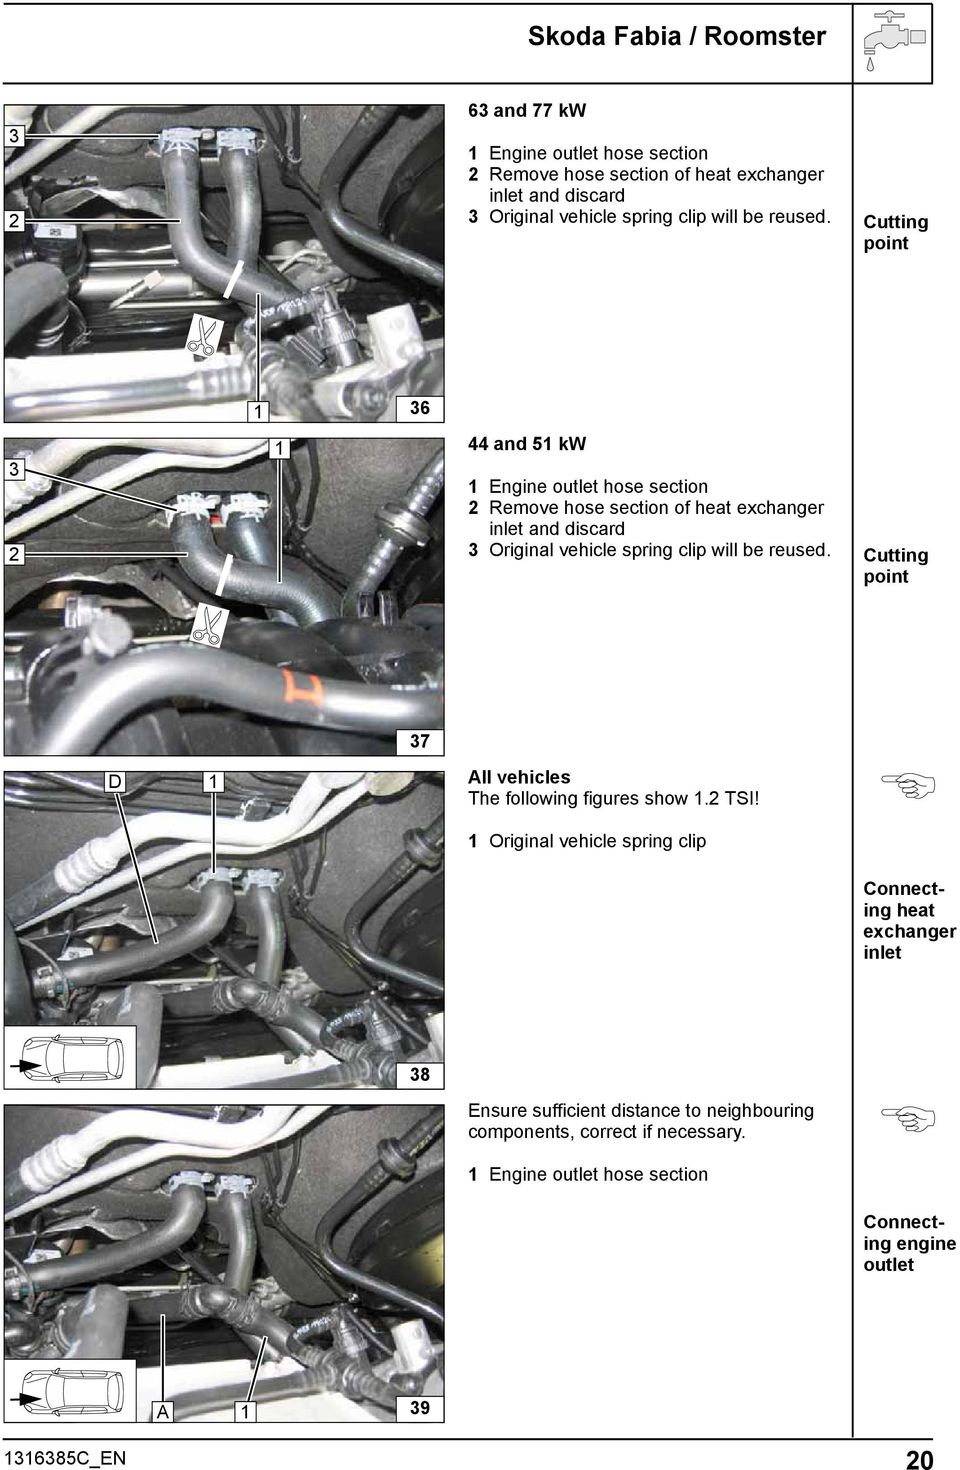 Always Follow All Webasto Installation And Repair Instructions Transmission Wiring Harness Spring Clips Will Be Reused Cutting Point 7 D Vehicles The Following Figures Show Tsi